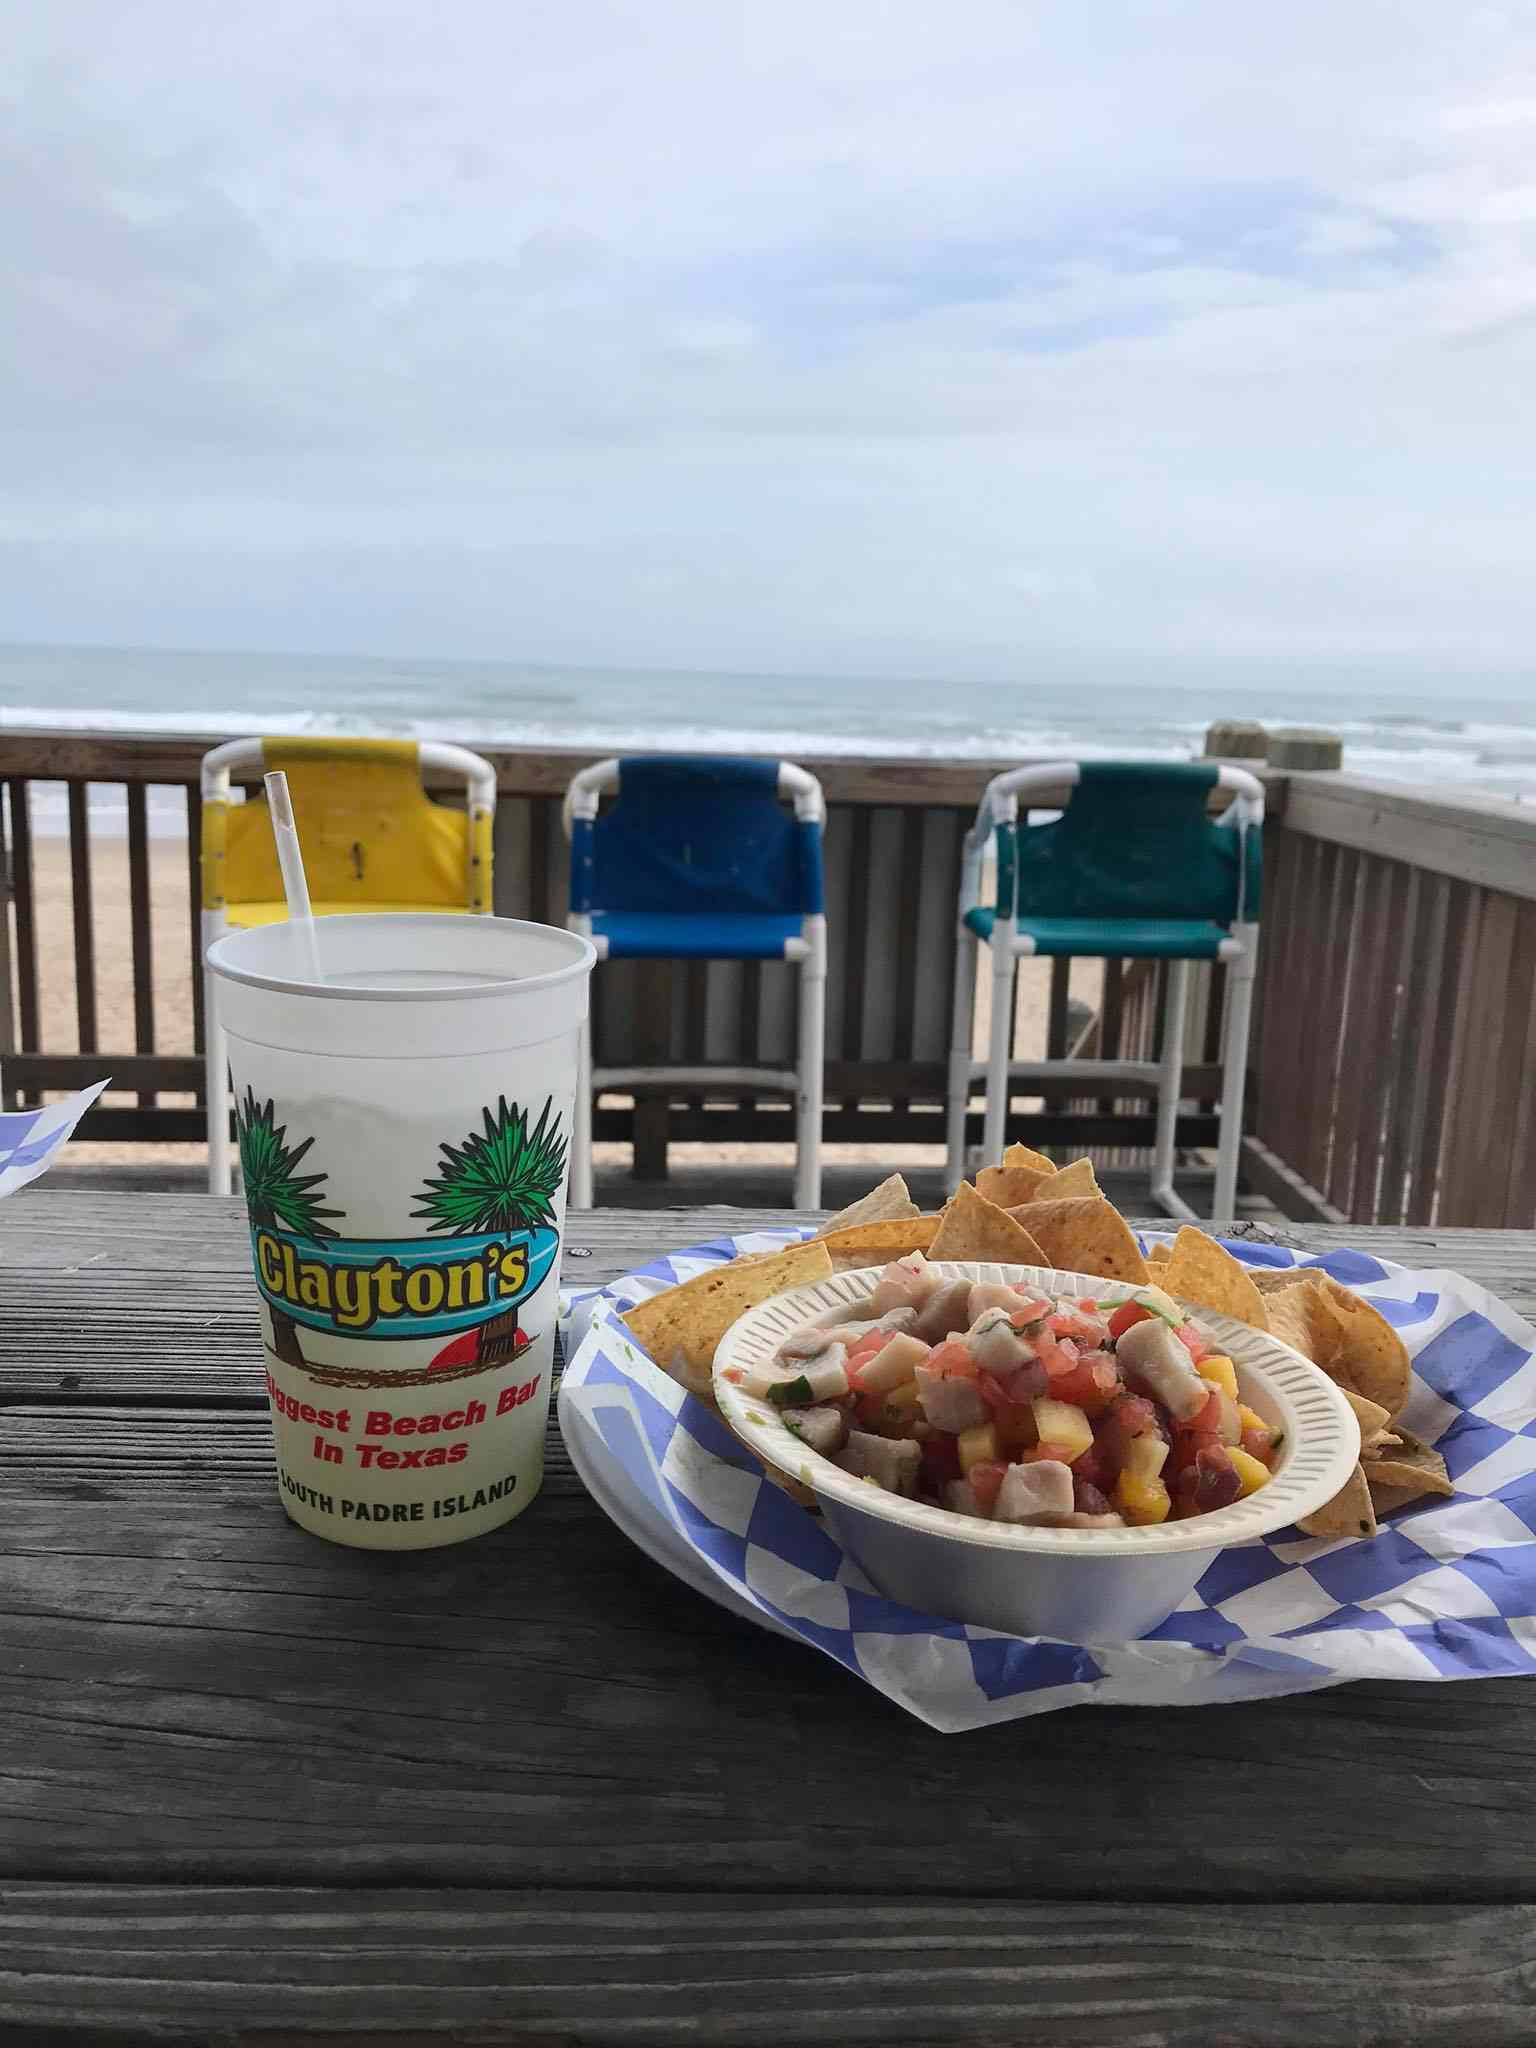 Ceviche and a marg on the beach at Clayton's